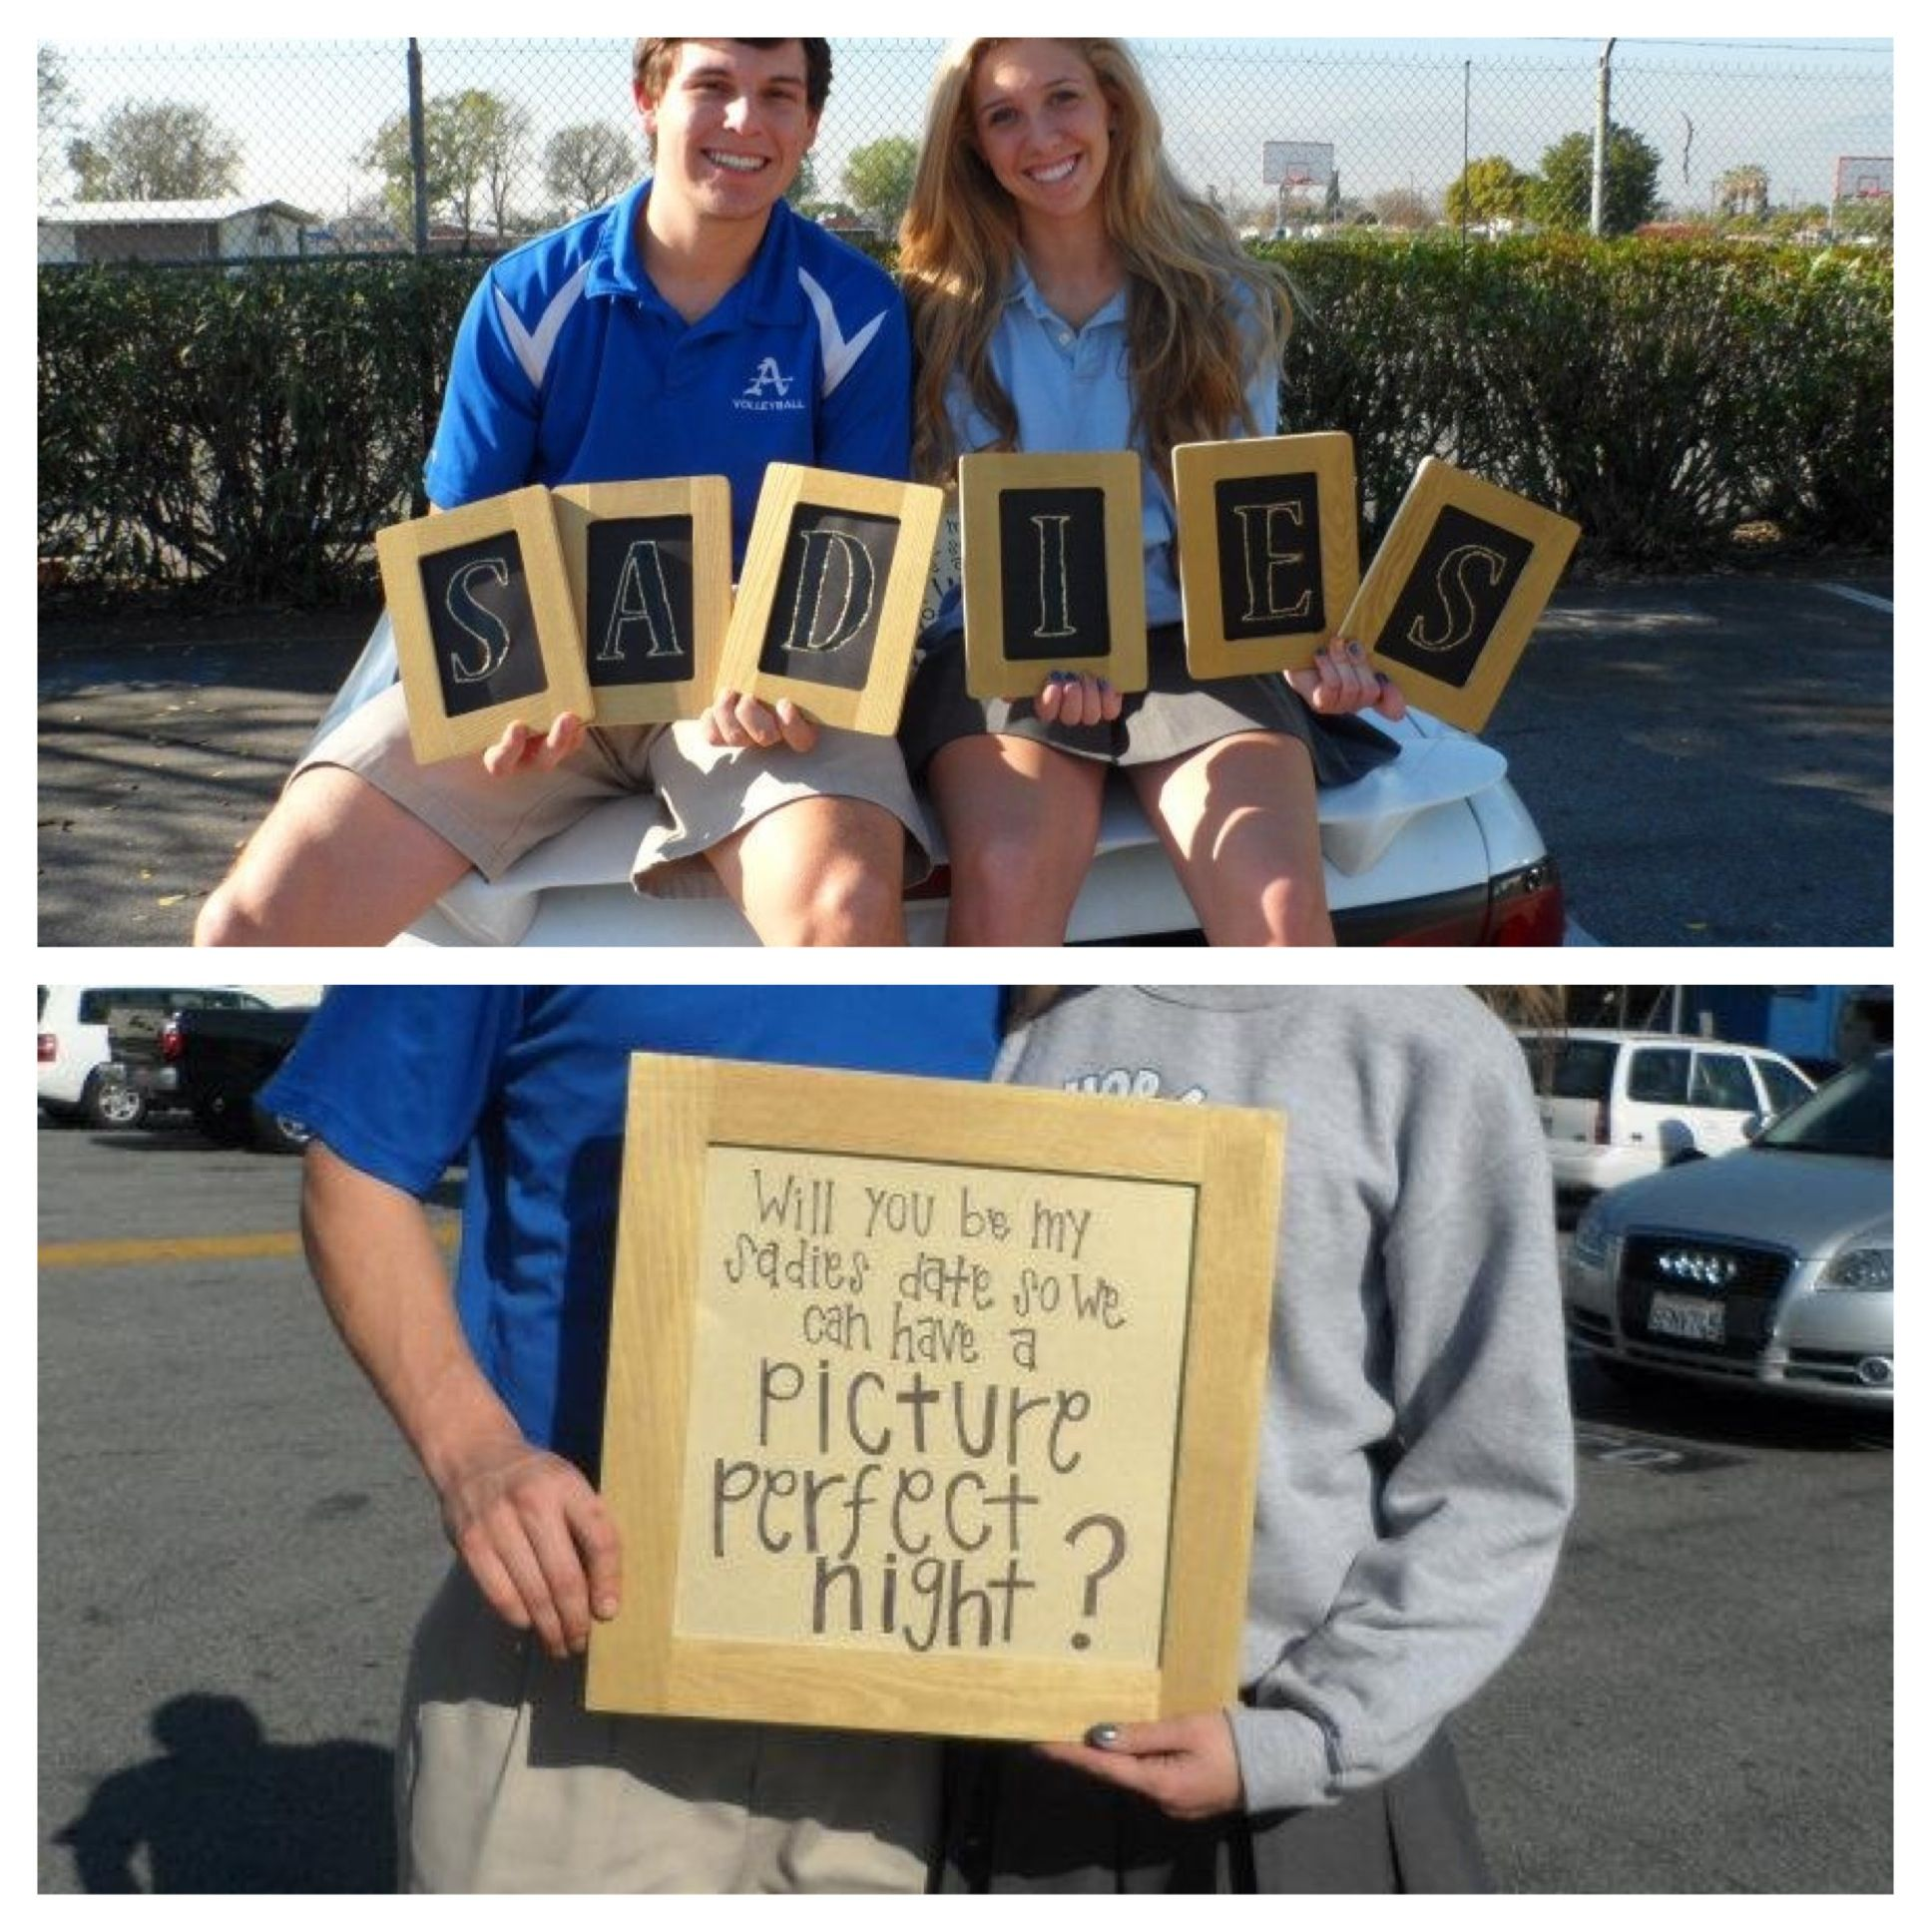 Funny ways to ask a girl to a dance